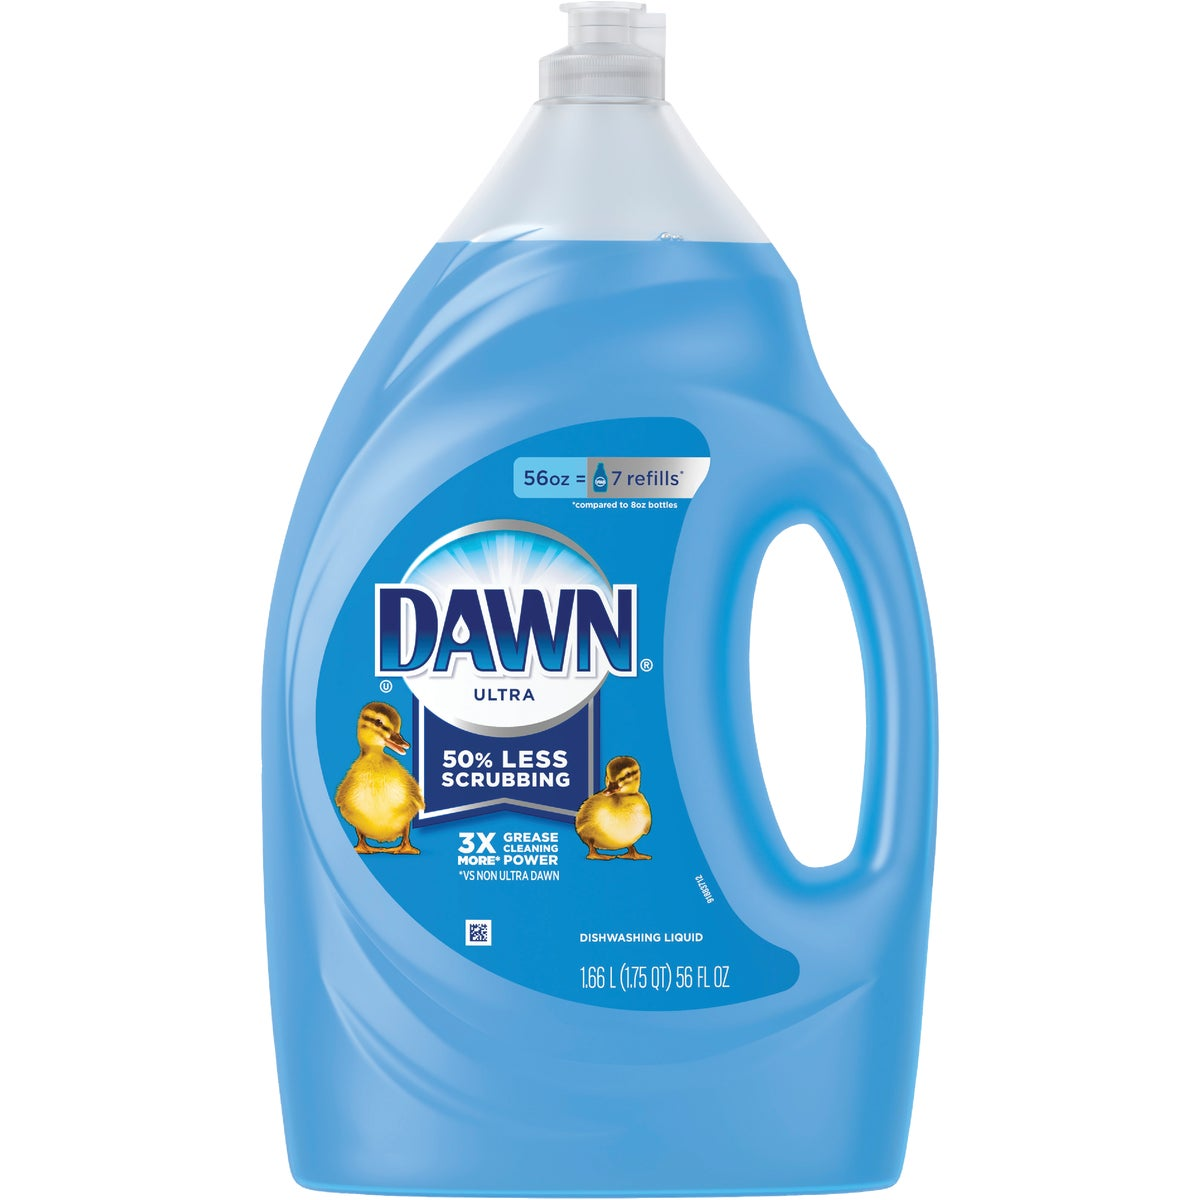 56 OZ DAWN DISH SOAP - 11045 by Procter & Gamble